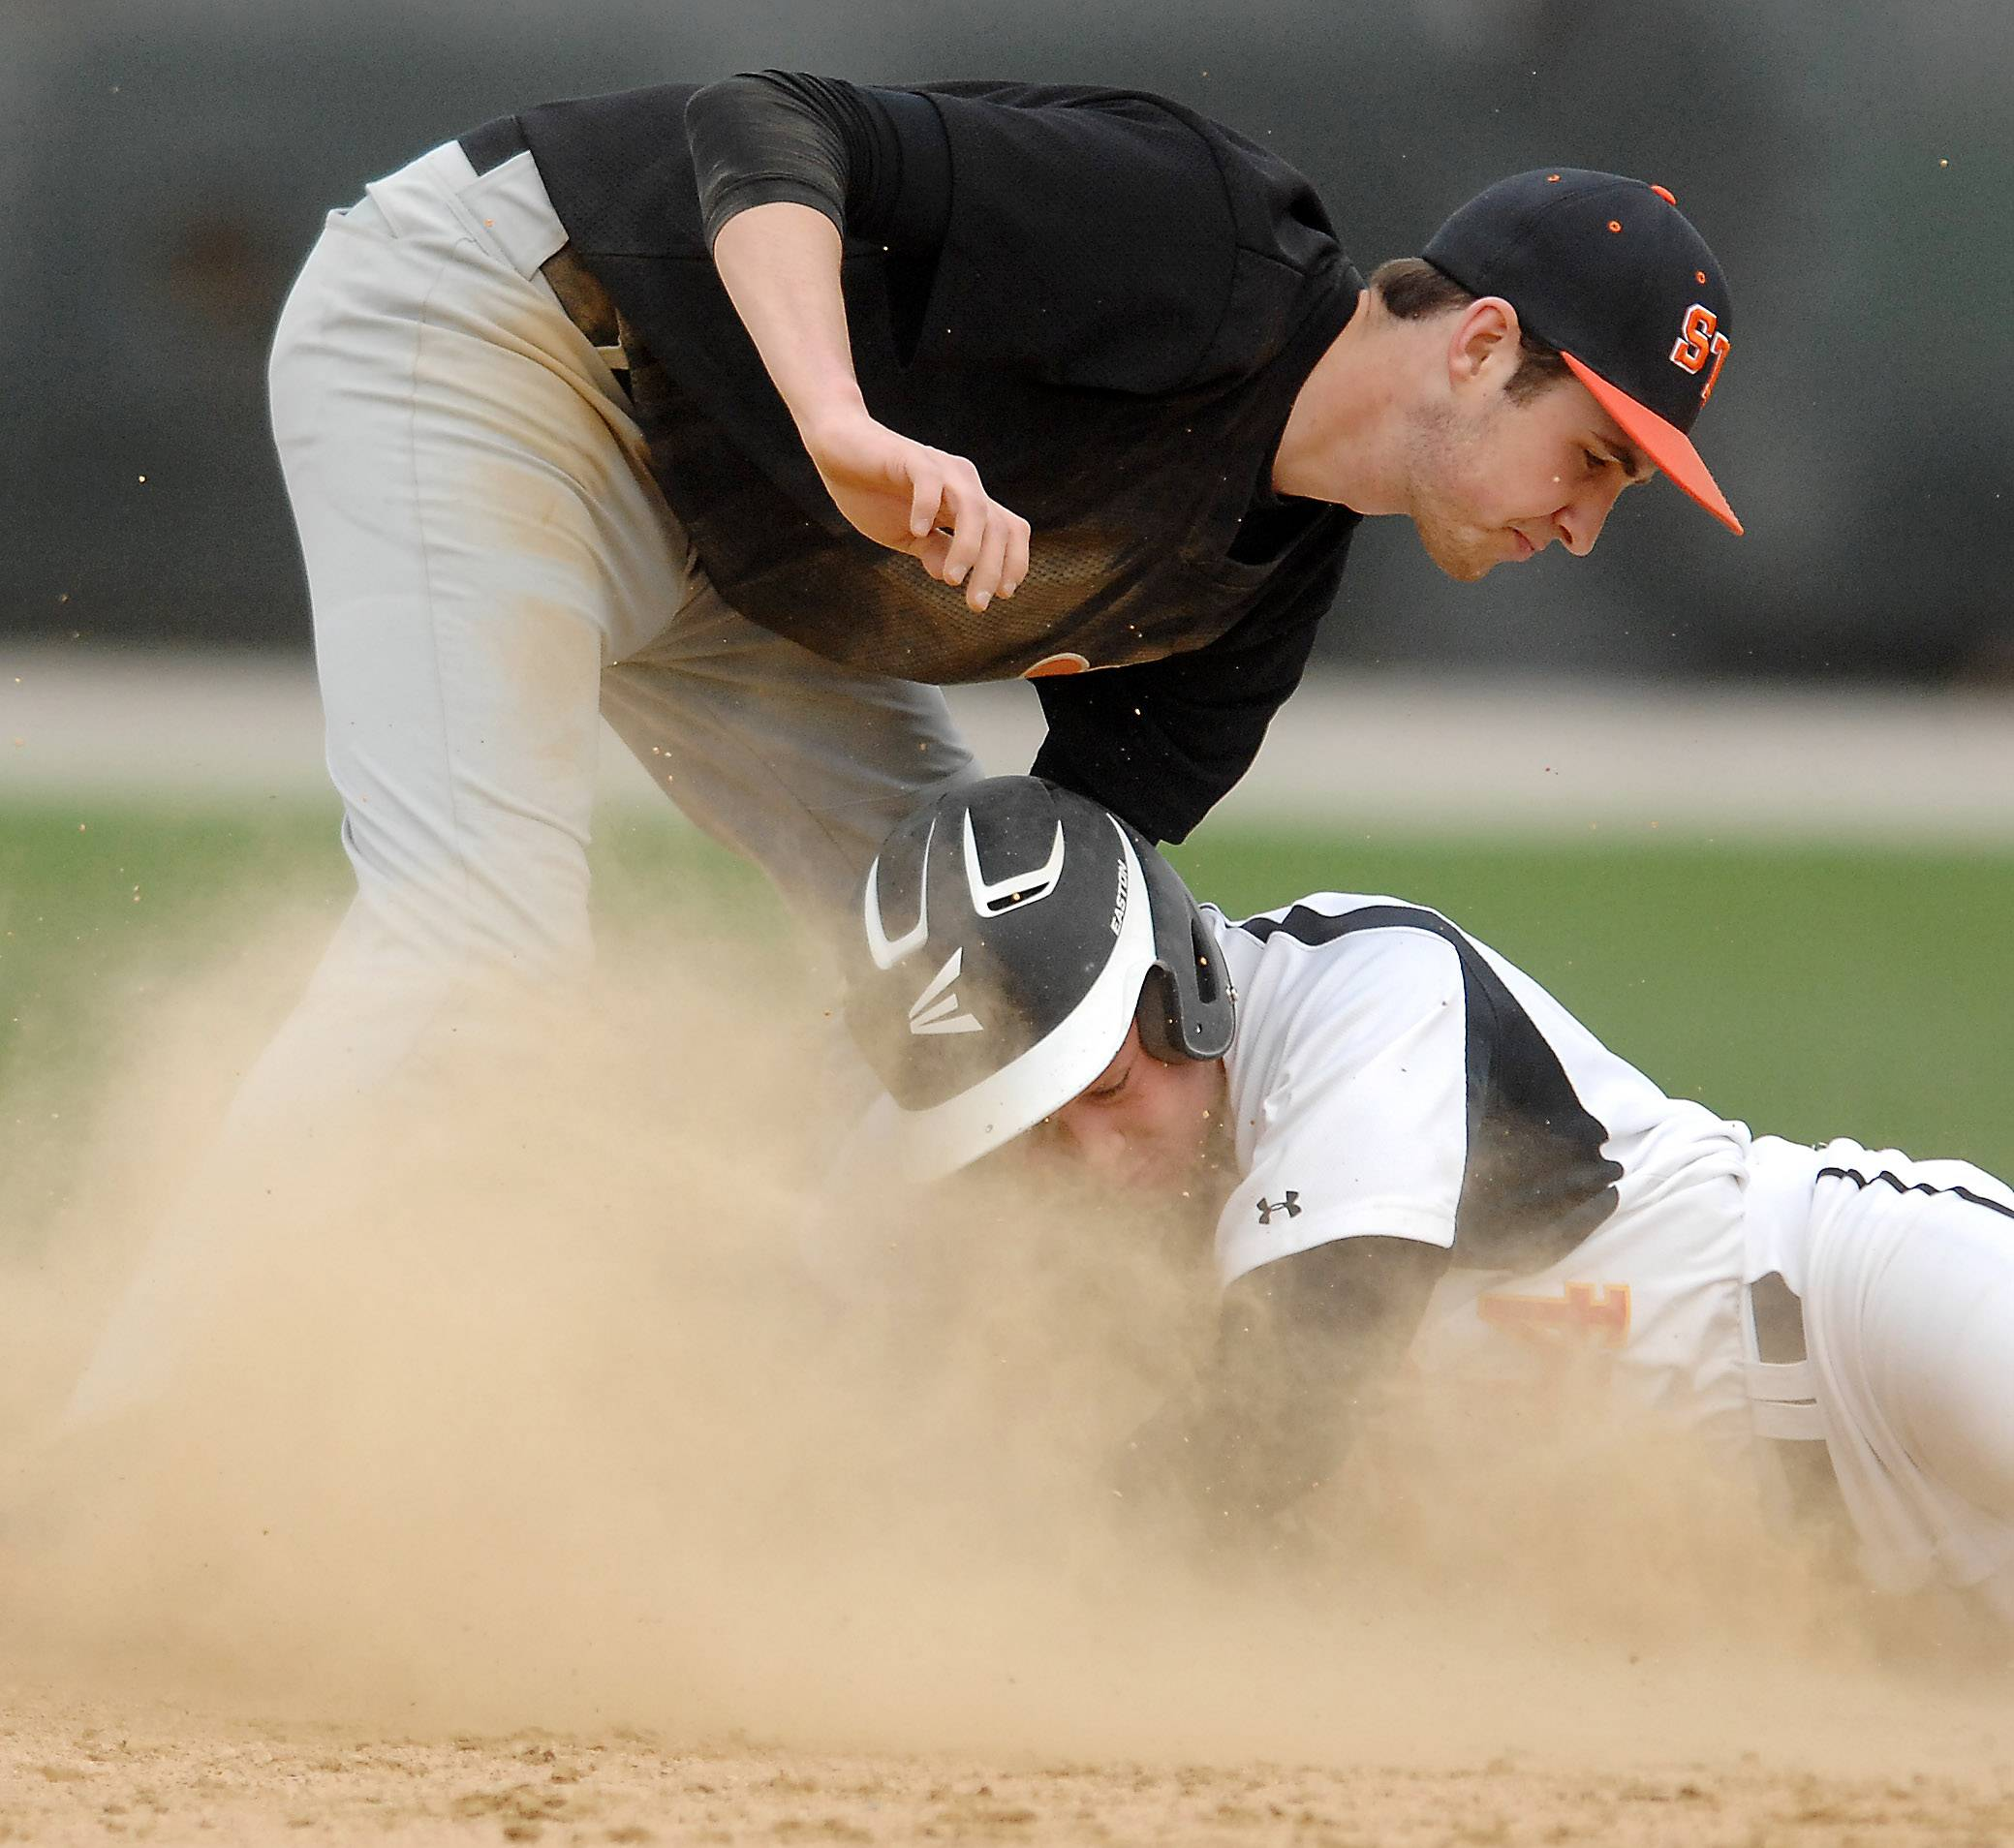 Batavia's Joe Gross (44) is tagged out by St. Charles East's Charles Alex Abate (4) at second during Thursday's game in Batavia.